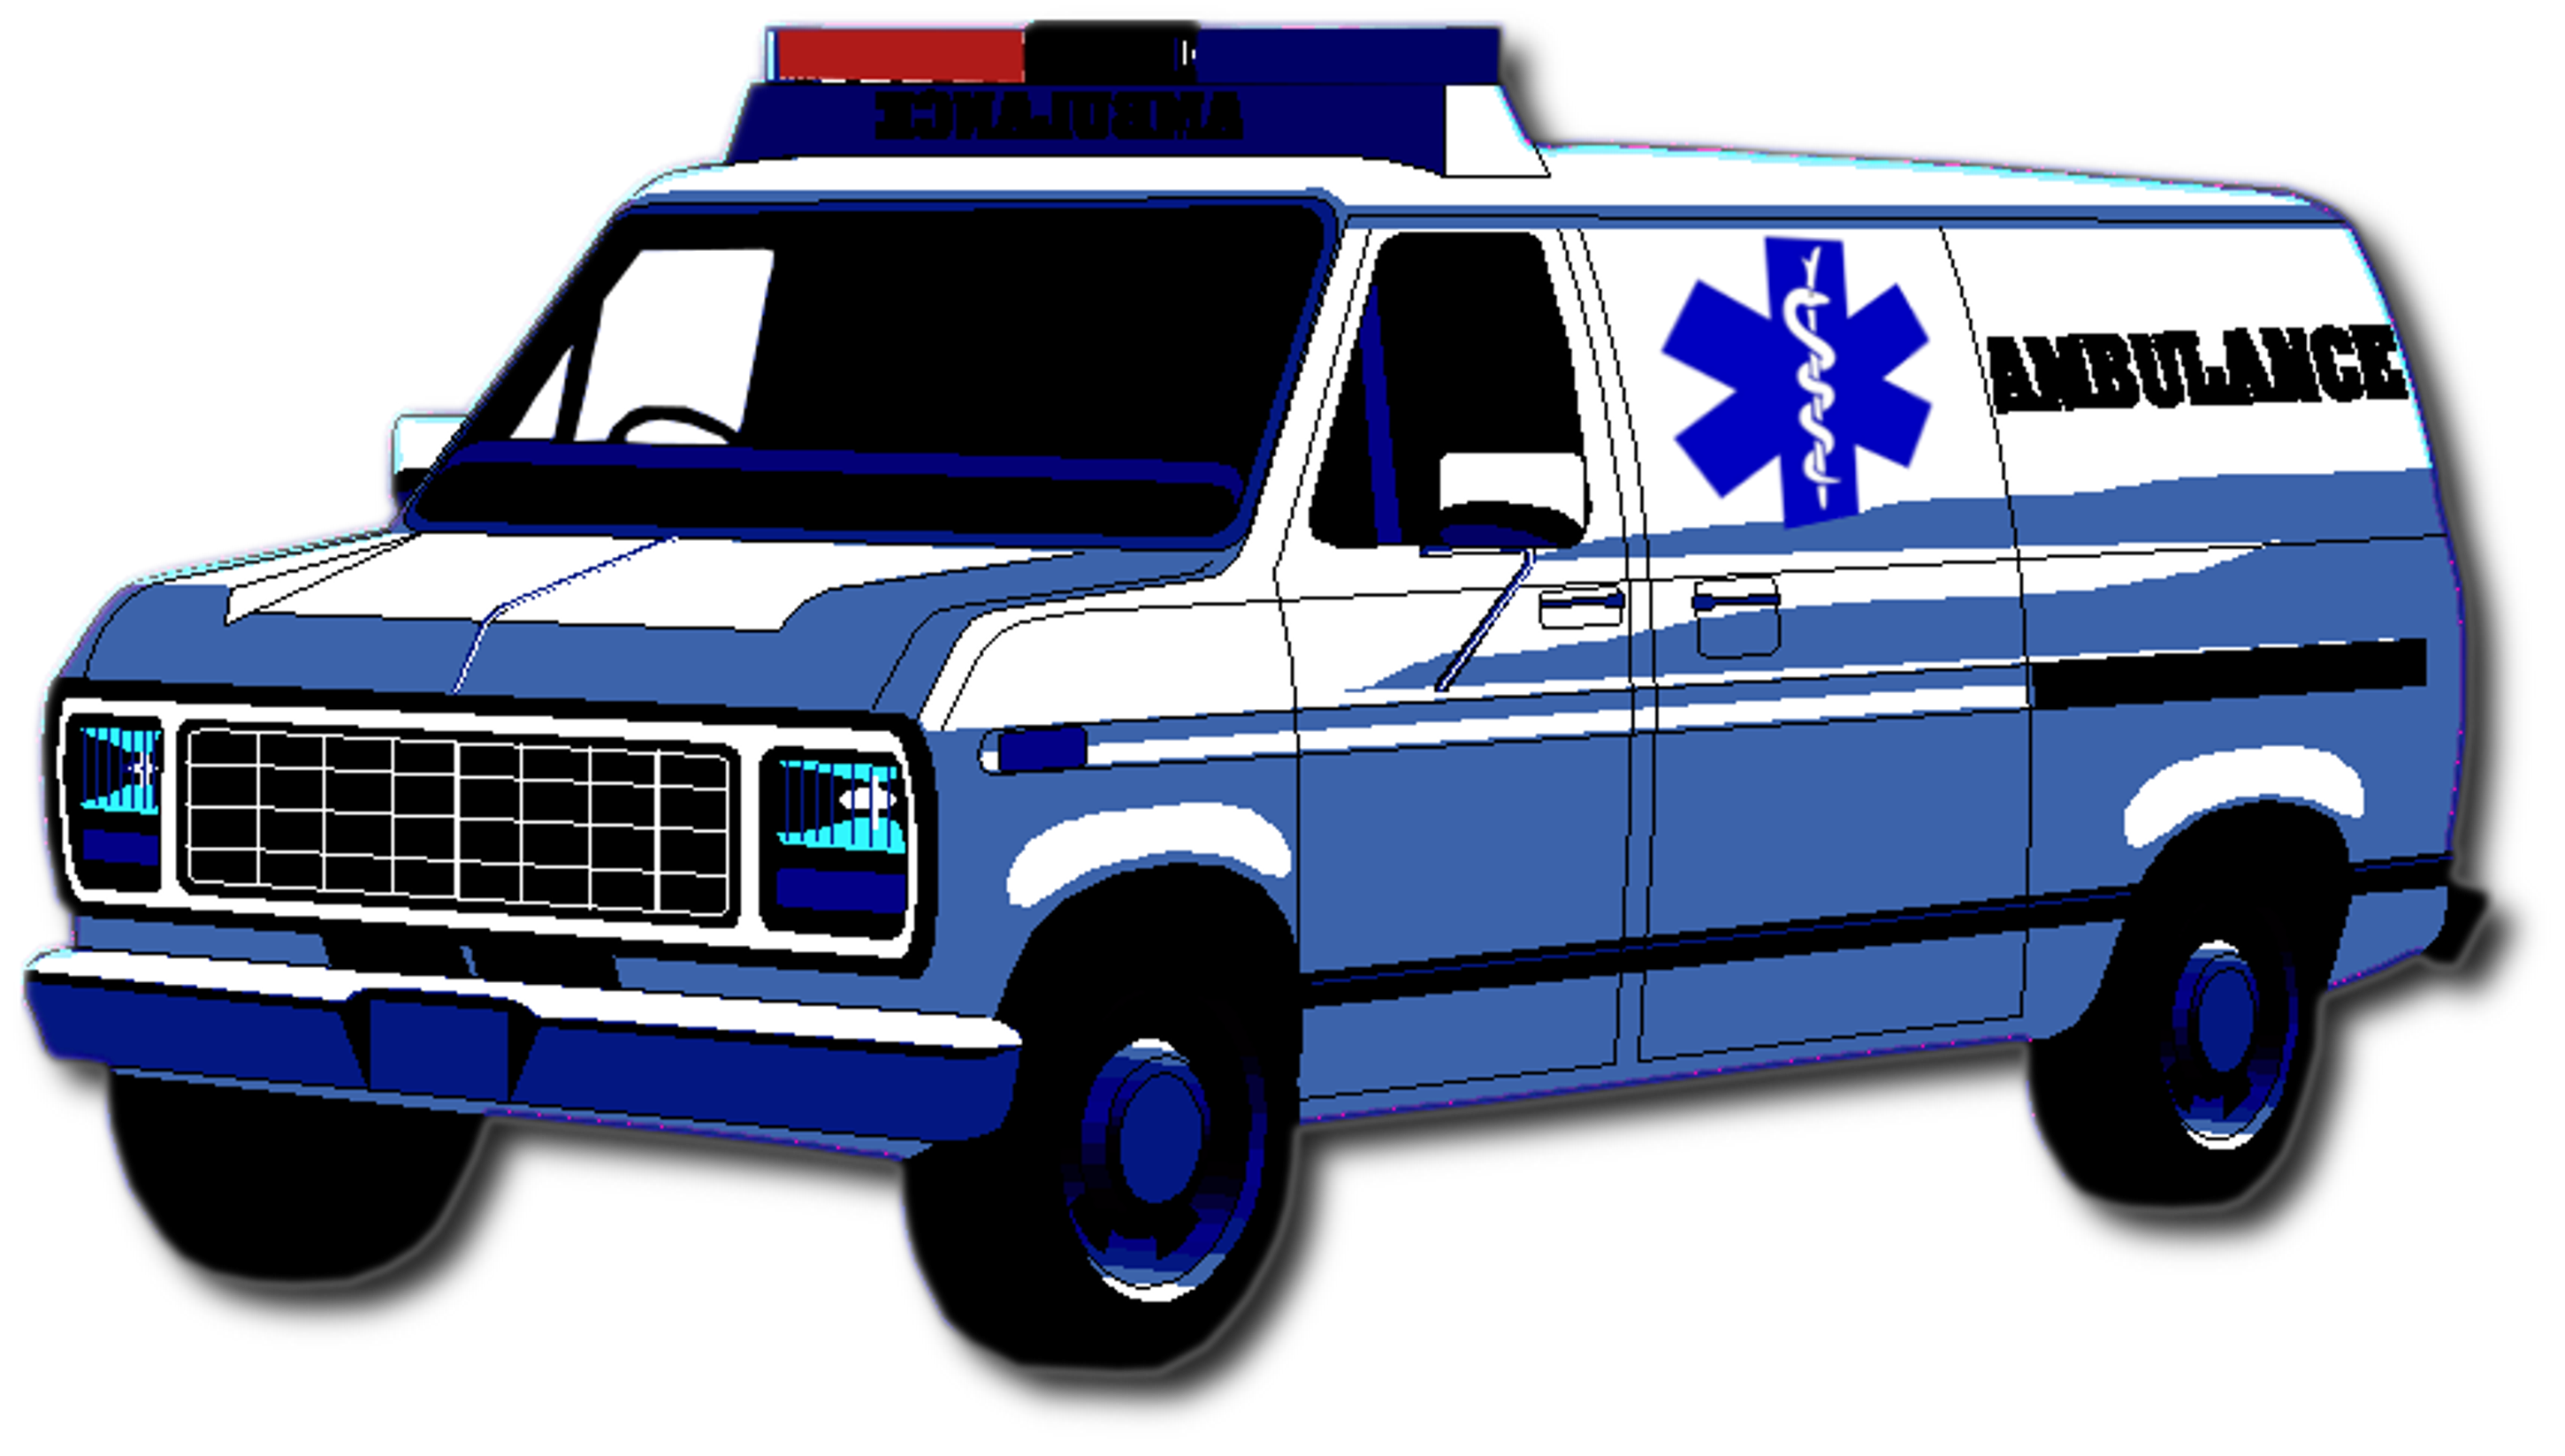 Ambulance car clipart svg download X Ambulance | Free Images at Clker.com - vector clip art online ... svg download